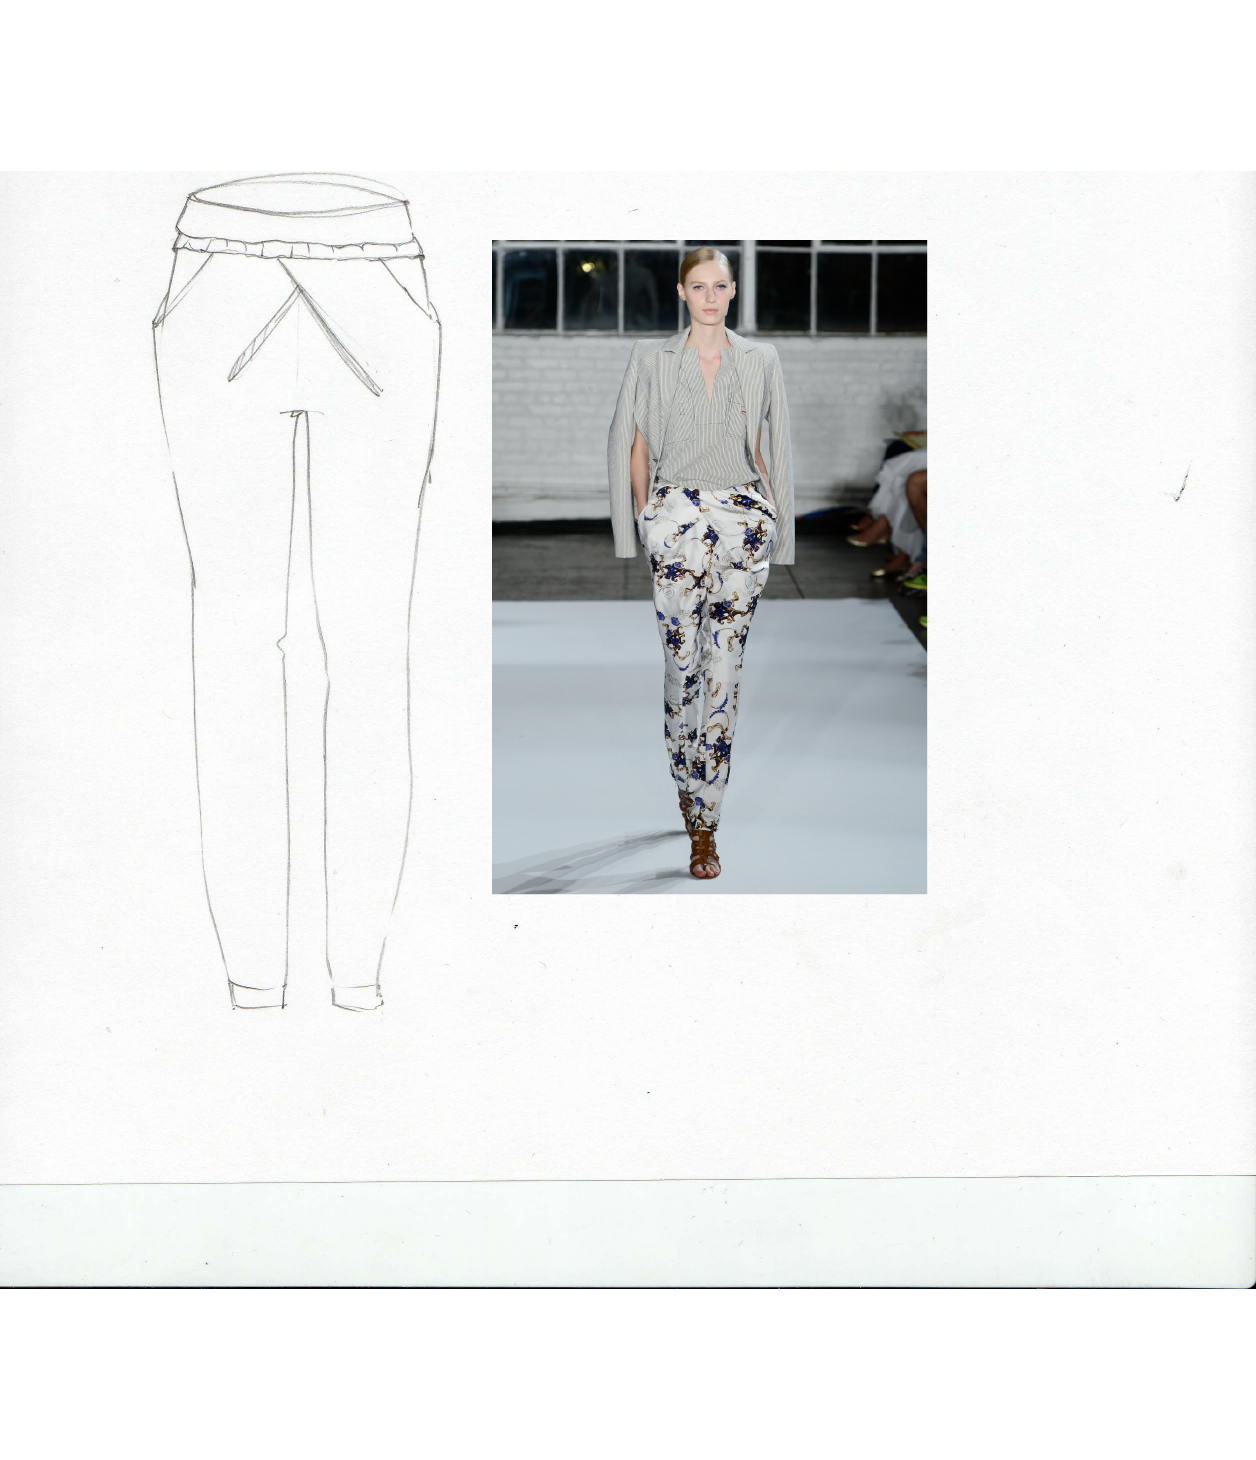 kate lab project_sketches-13.png